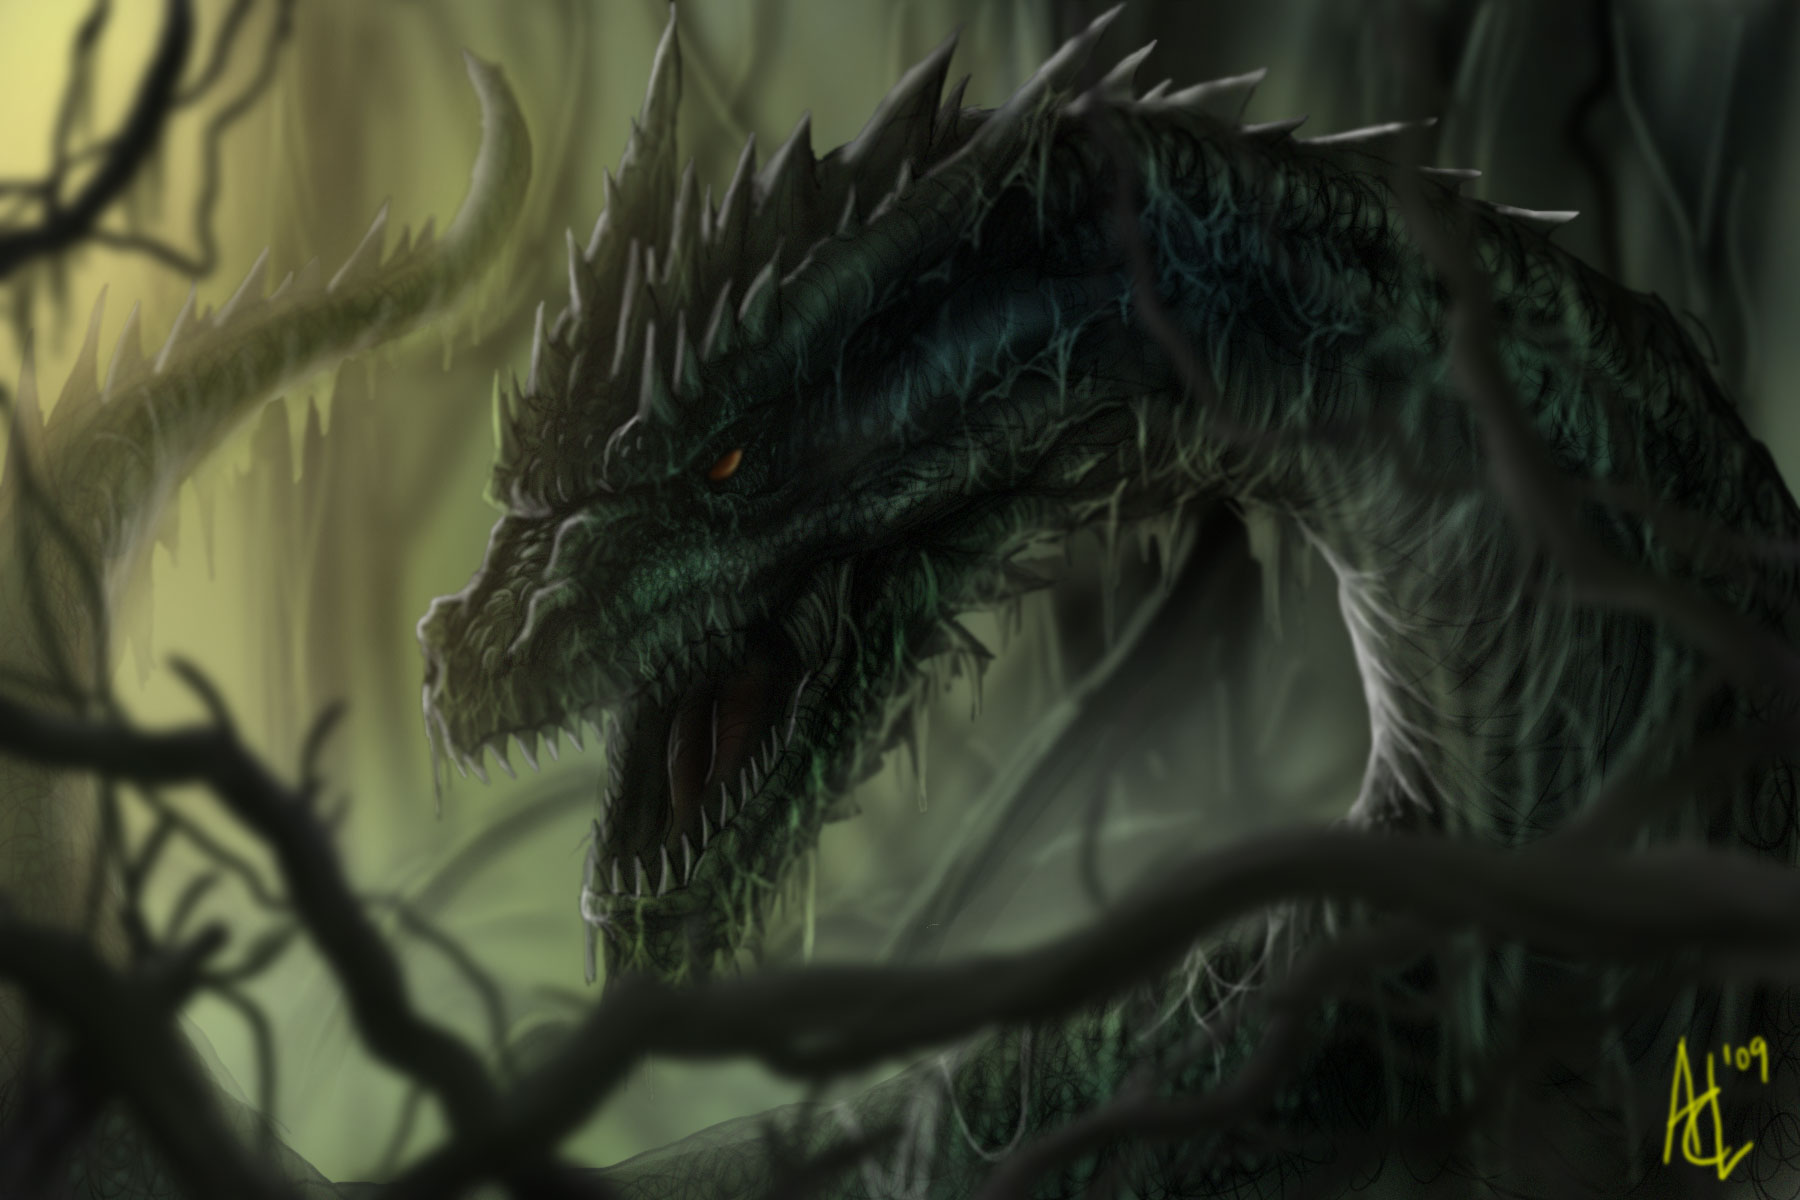 Swamp_Dragon_by_Trevone.jpg